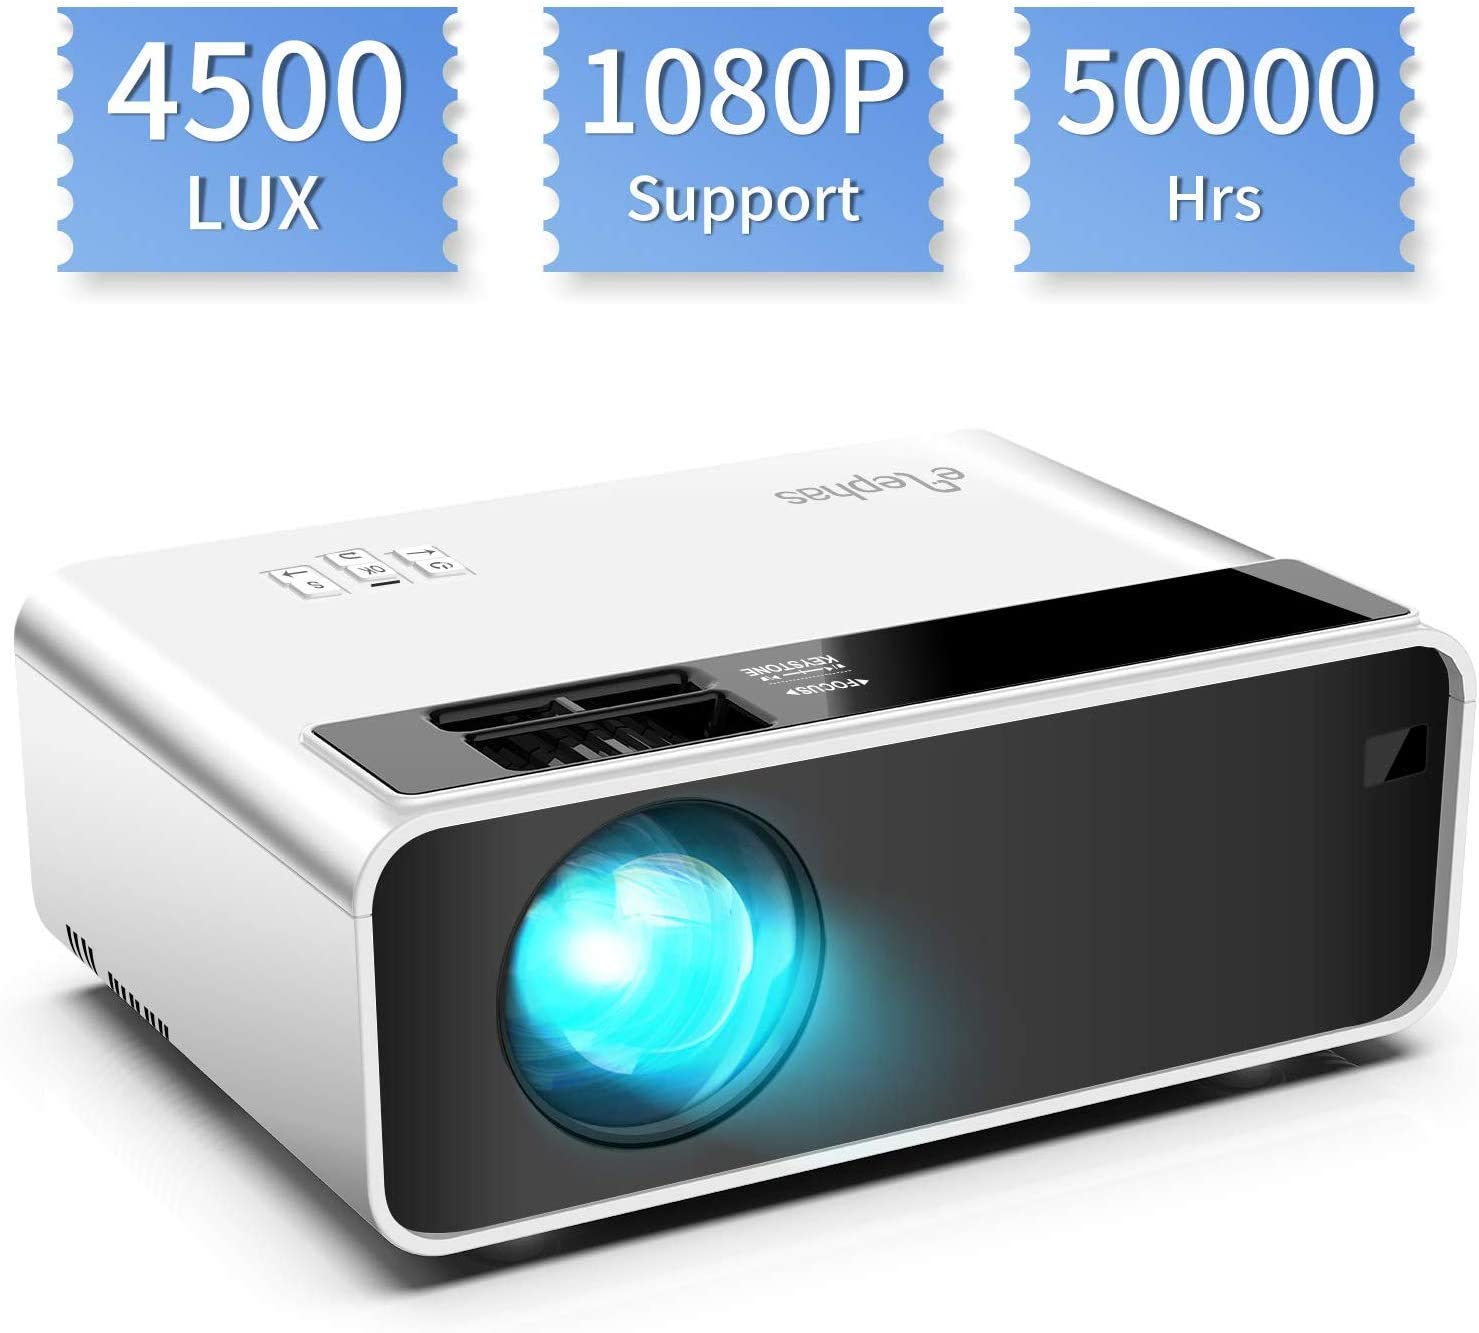 Mini proyector, ELEPHAS Video Proyector 4500 Lux Proyector de Cine en casa portátil LED de Larga duración 1080P Compatible, Compatible con PS4, PC a través de HDMI, VGA, TF, AV y USB Black (White)